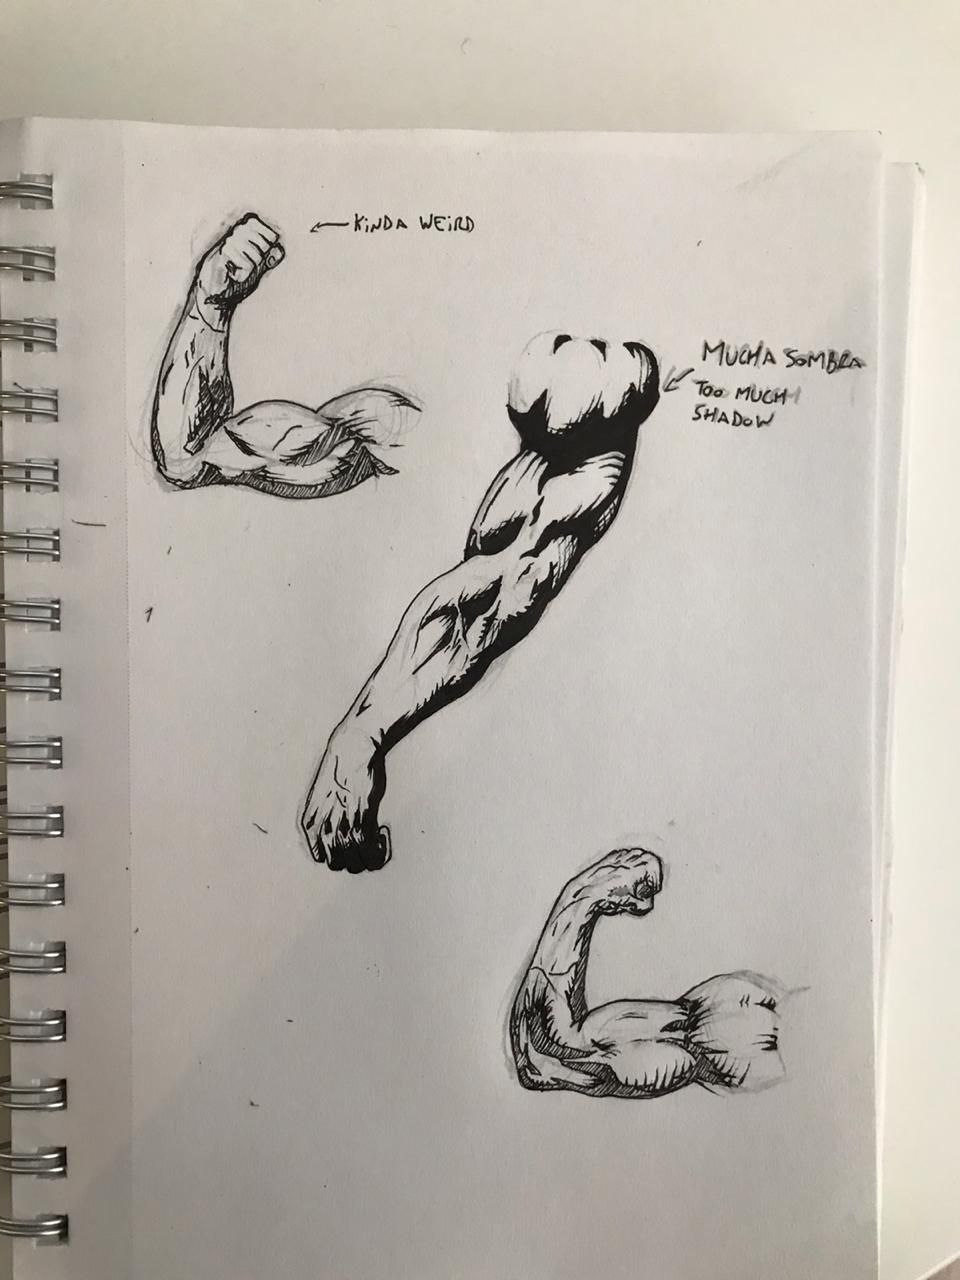 Some ripped arms - image 5 - student project